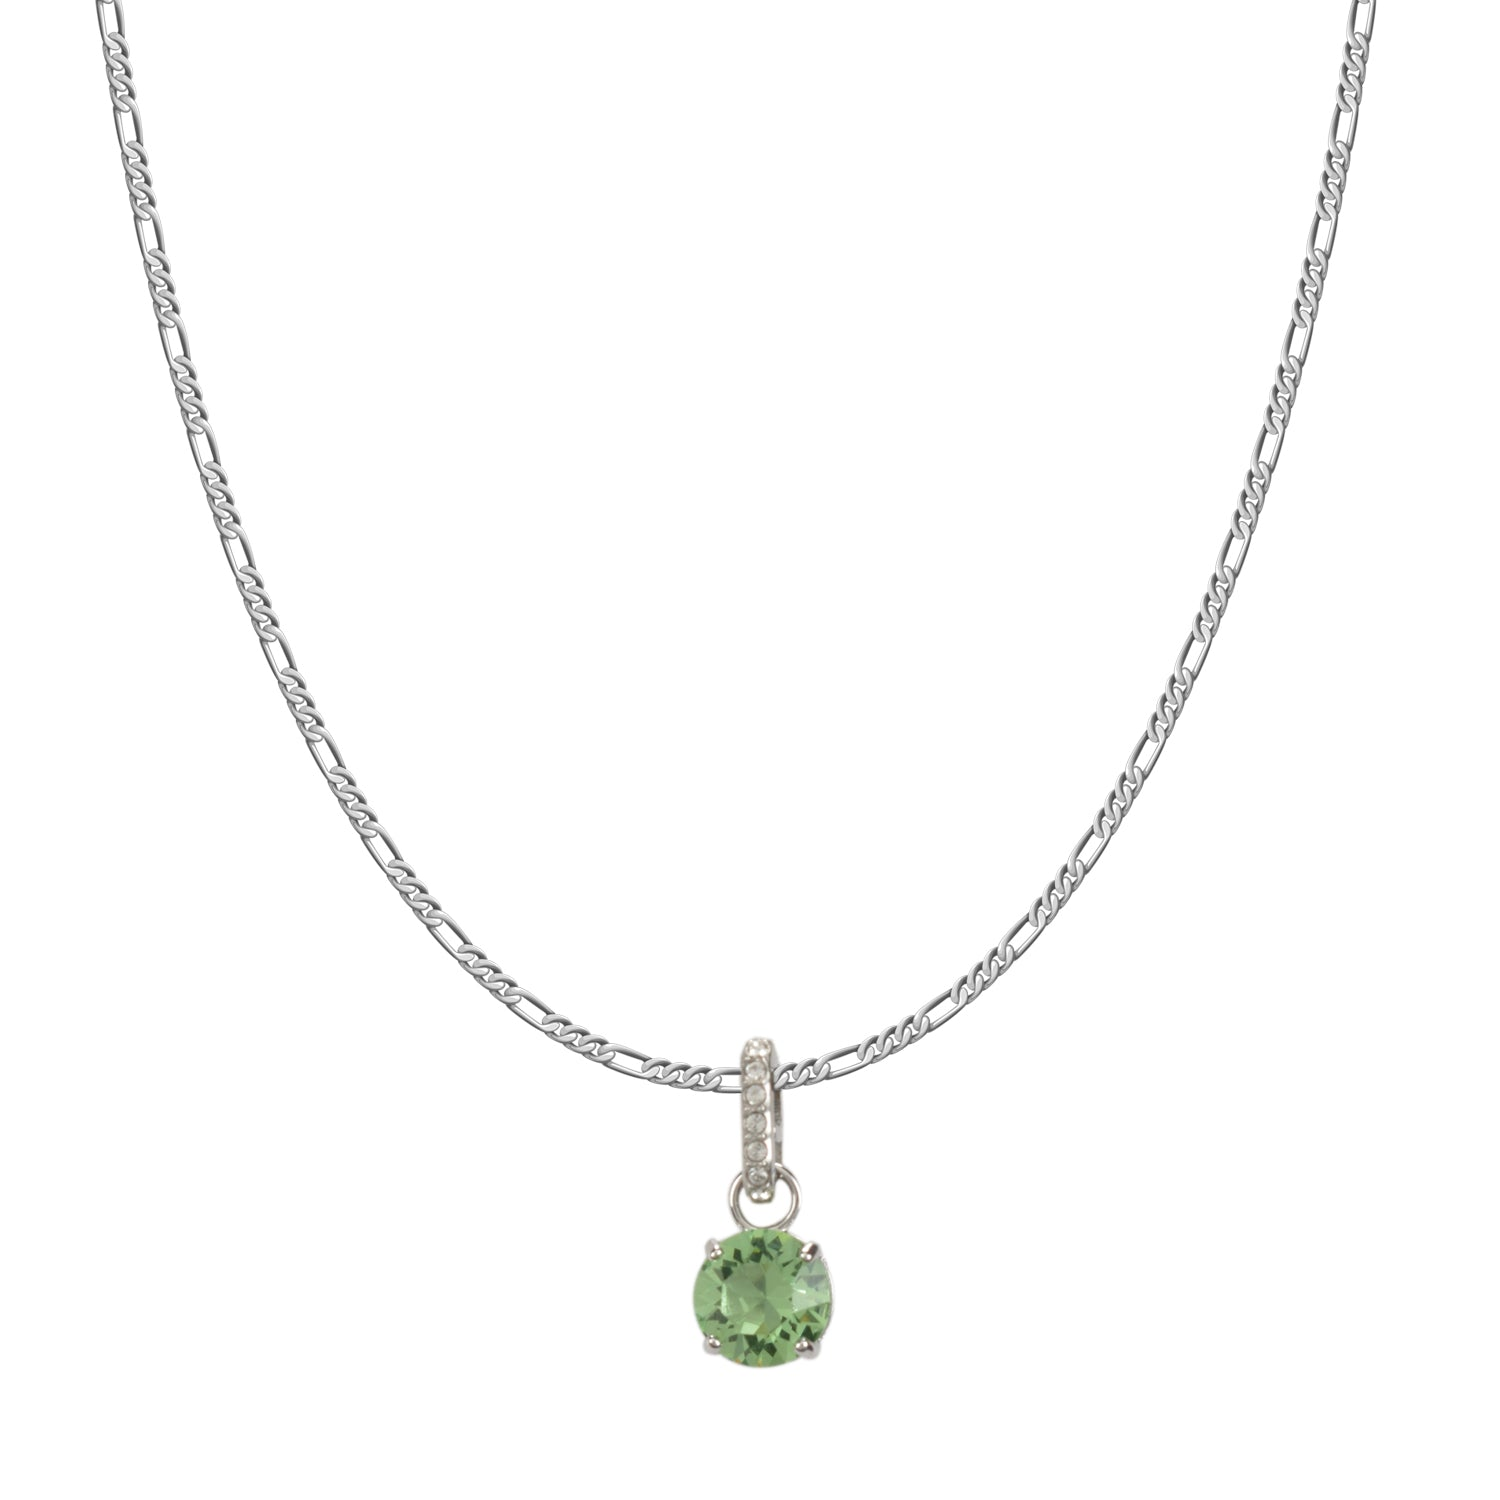 Swarovski Remix Collection Light Green  August Charm In Rhodium Plated | Shop Luxury Swarovski Charm Online